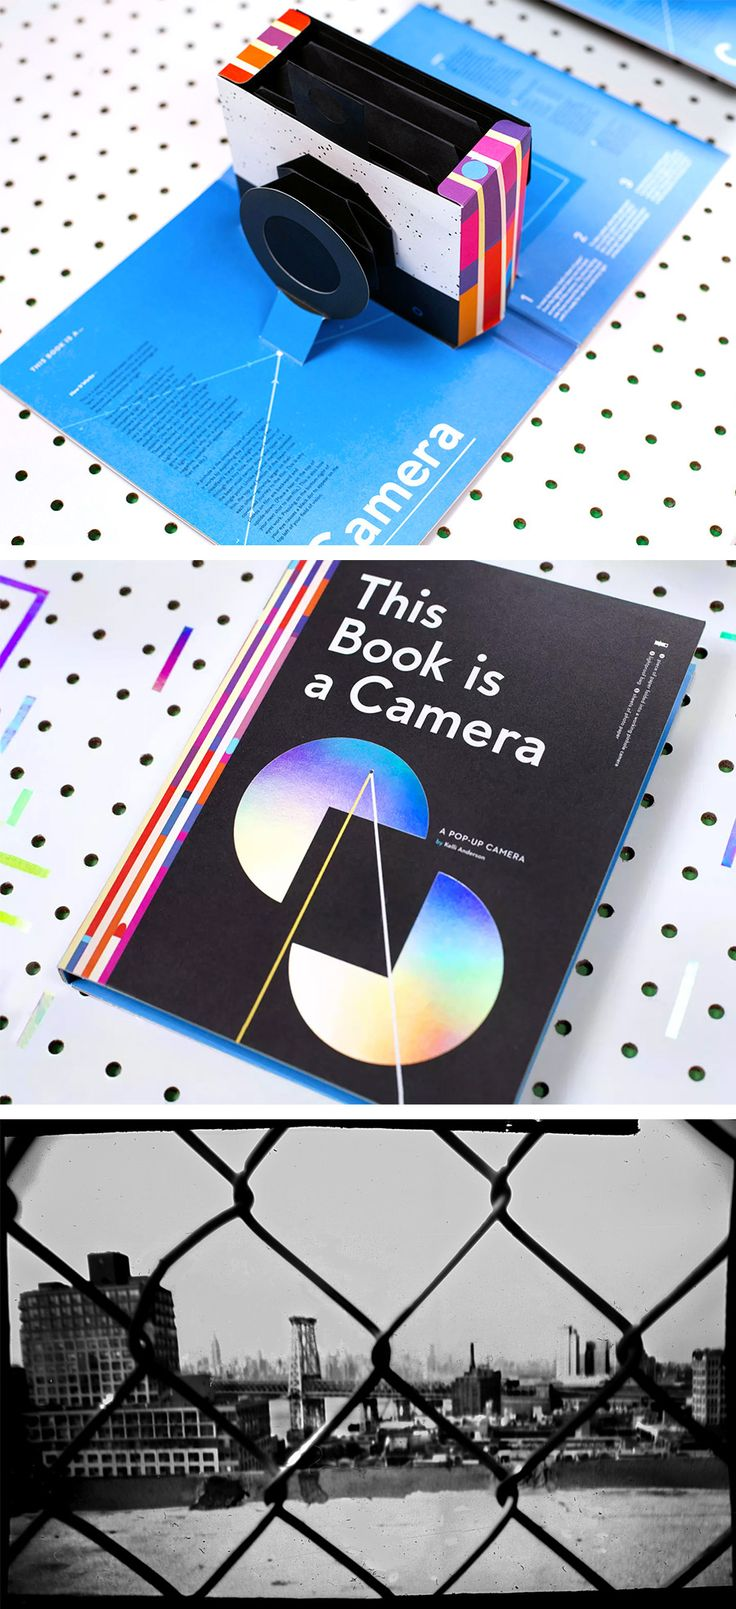 This Book Is a Camera: A Functioning Pinhole Camera Inside a Pop-Up Book